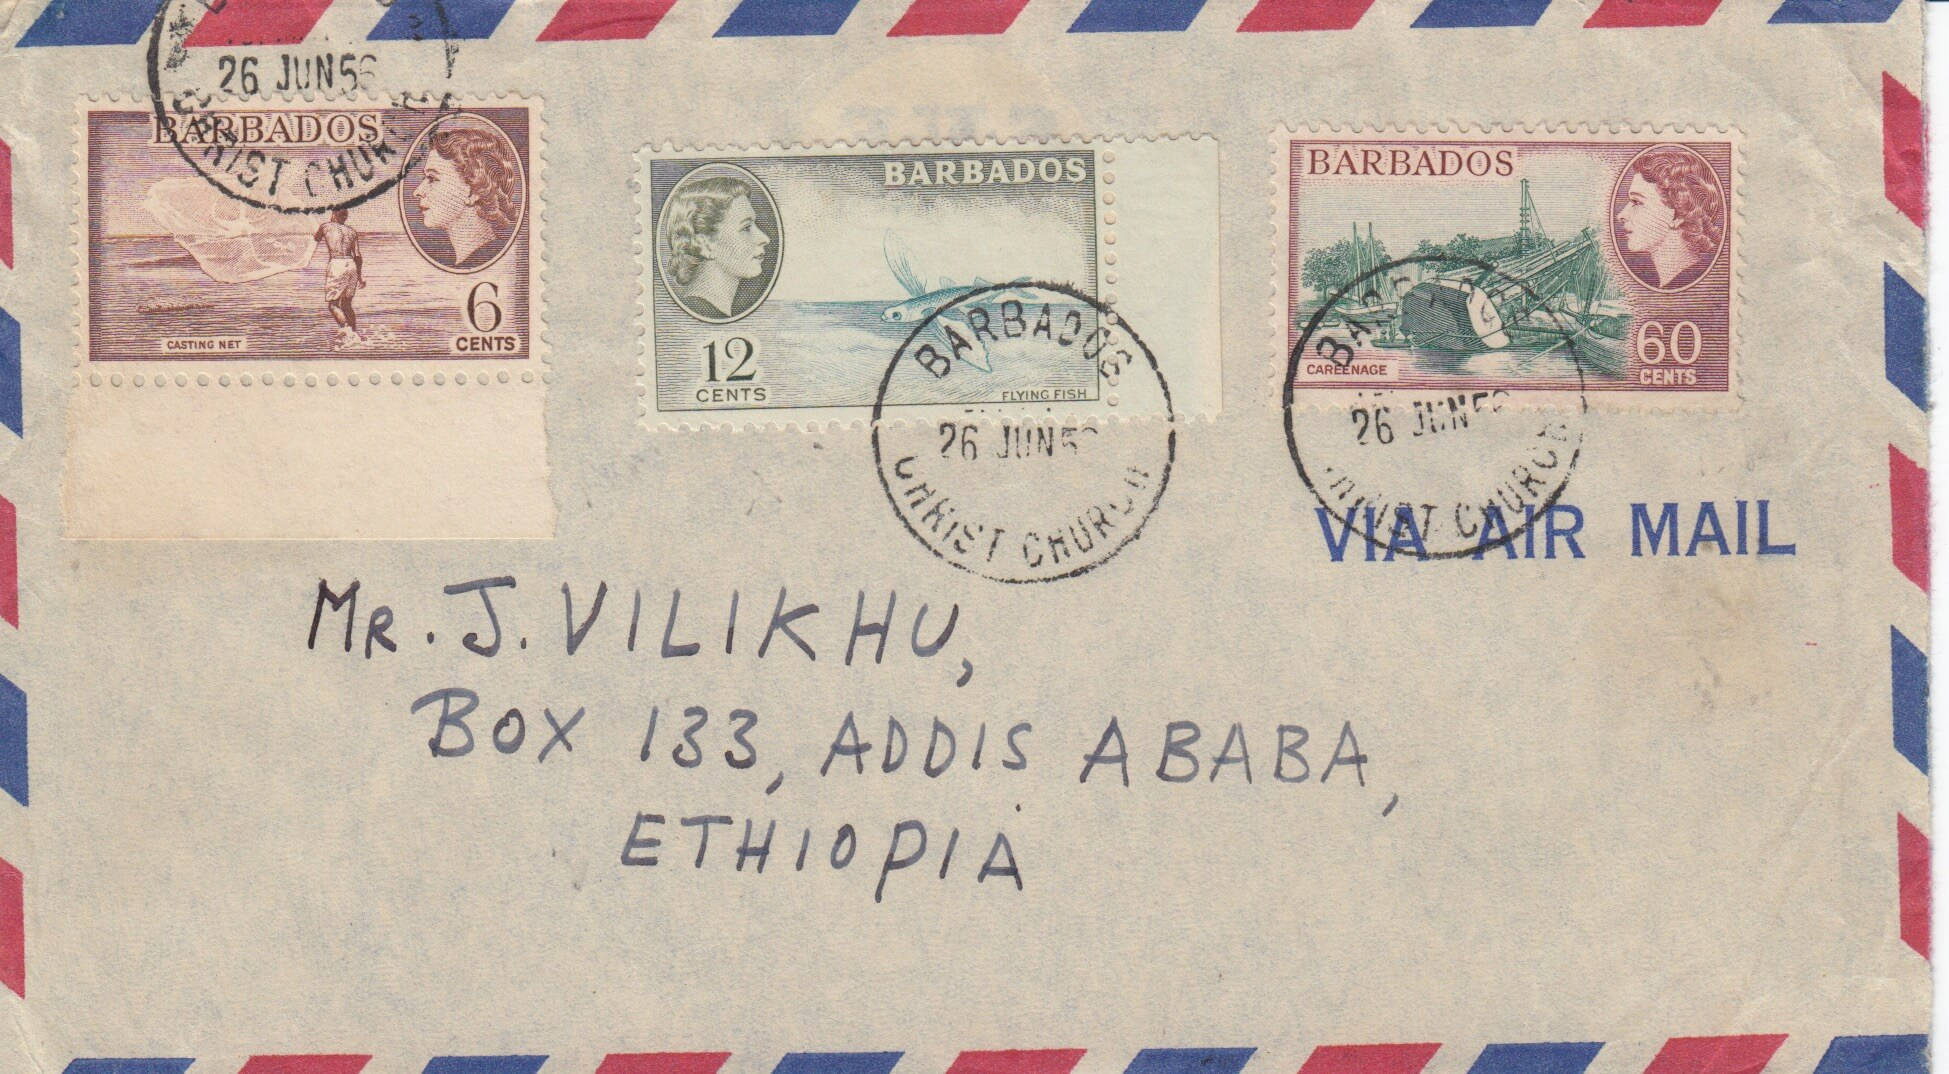 Barbados to Adis Ababa airmail cover